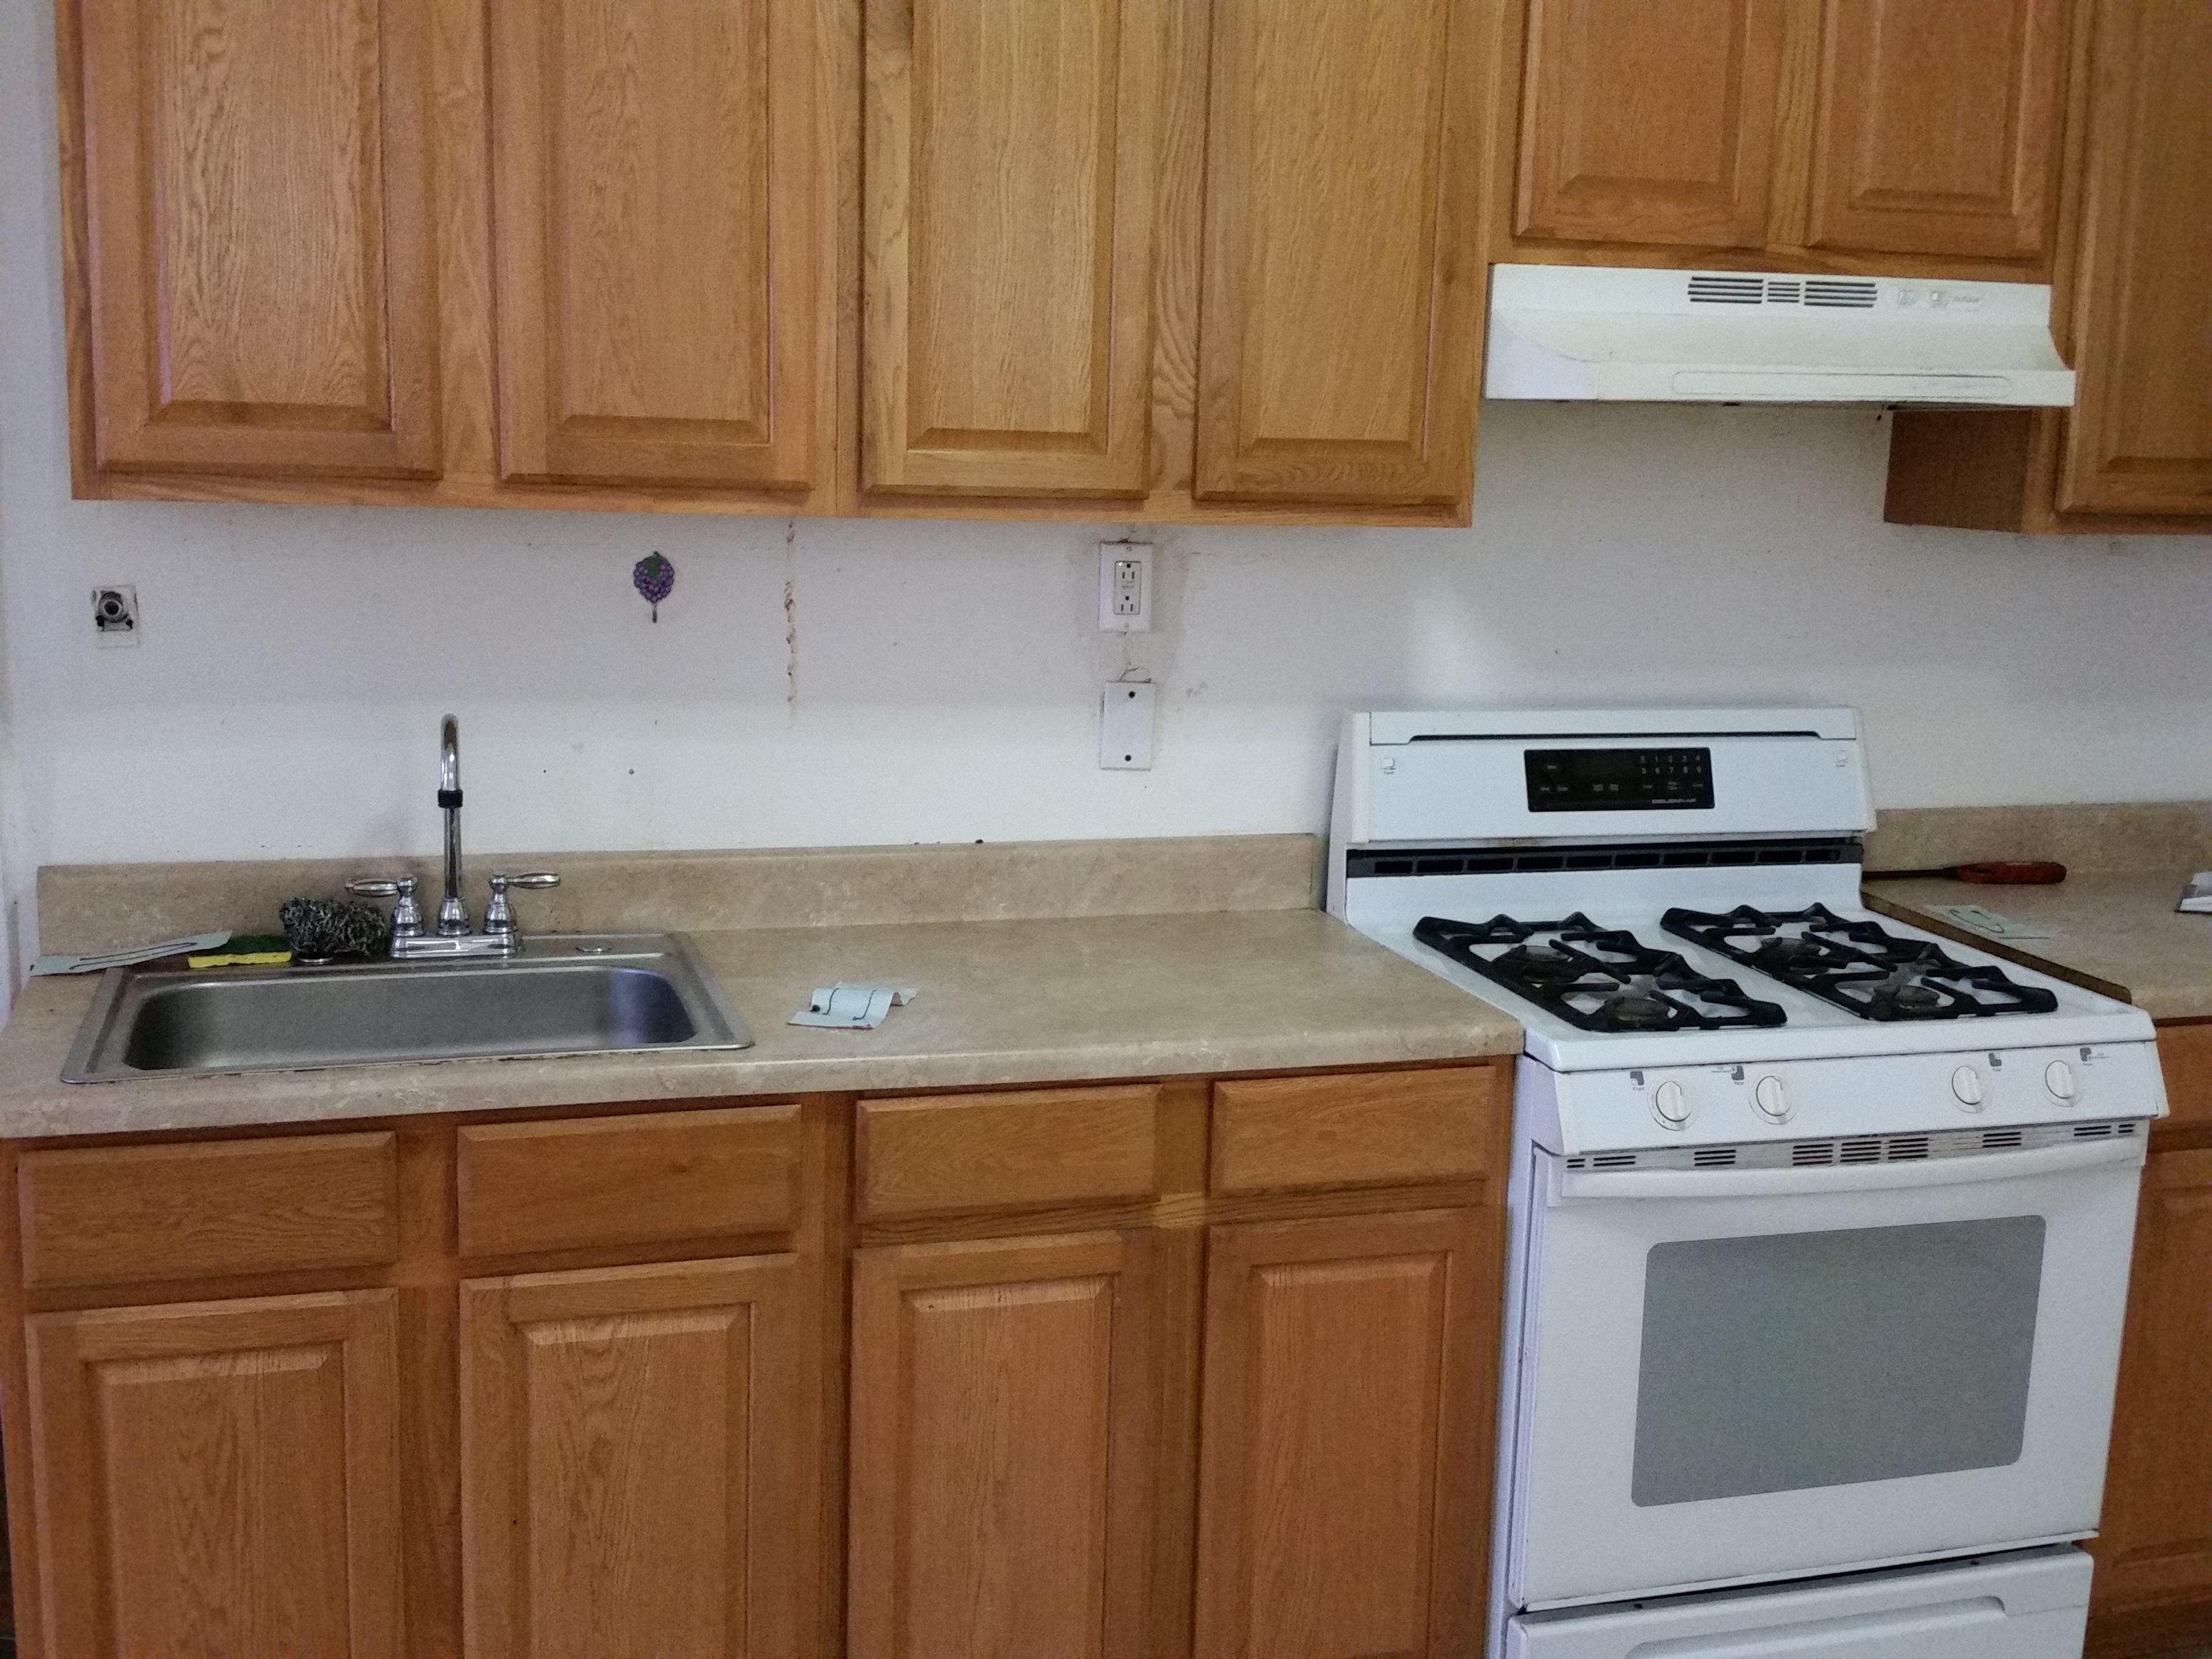 Studio Apartment Jersey City $1450 / 1br - $1450 / 1br - jersey city heights no broker fee open